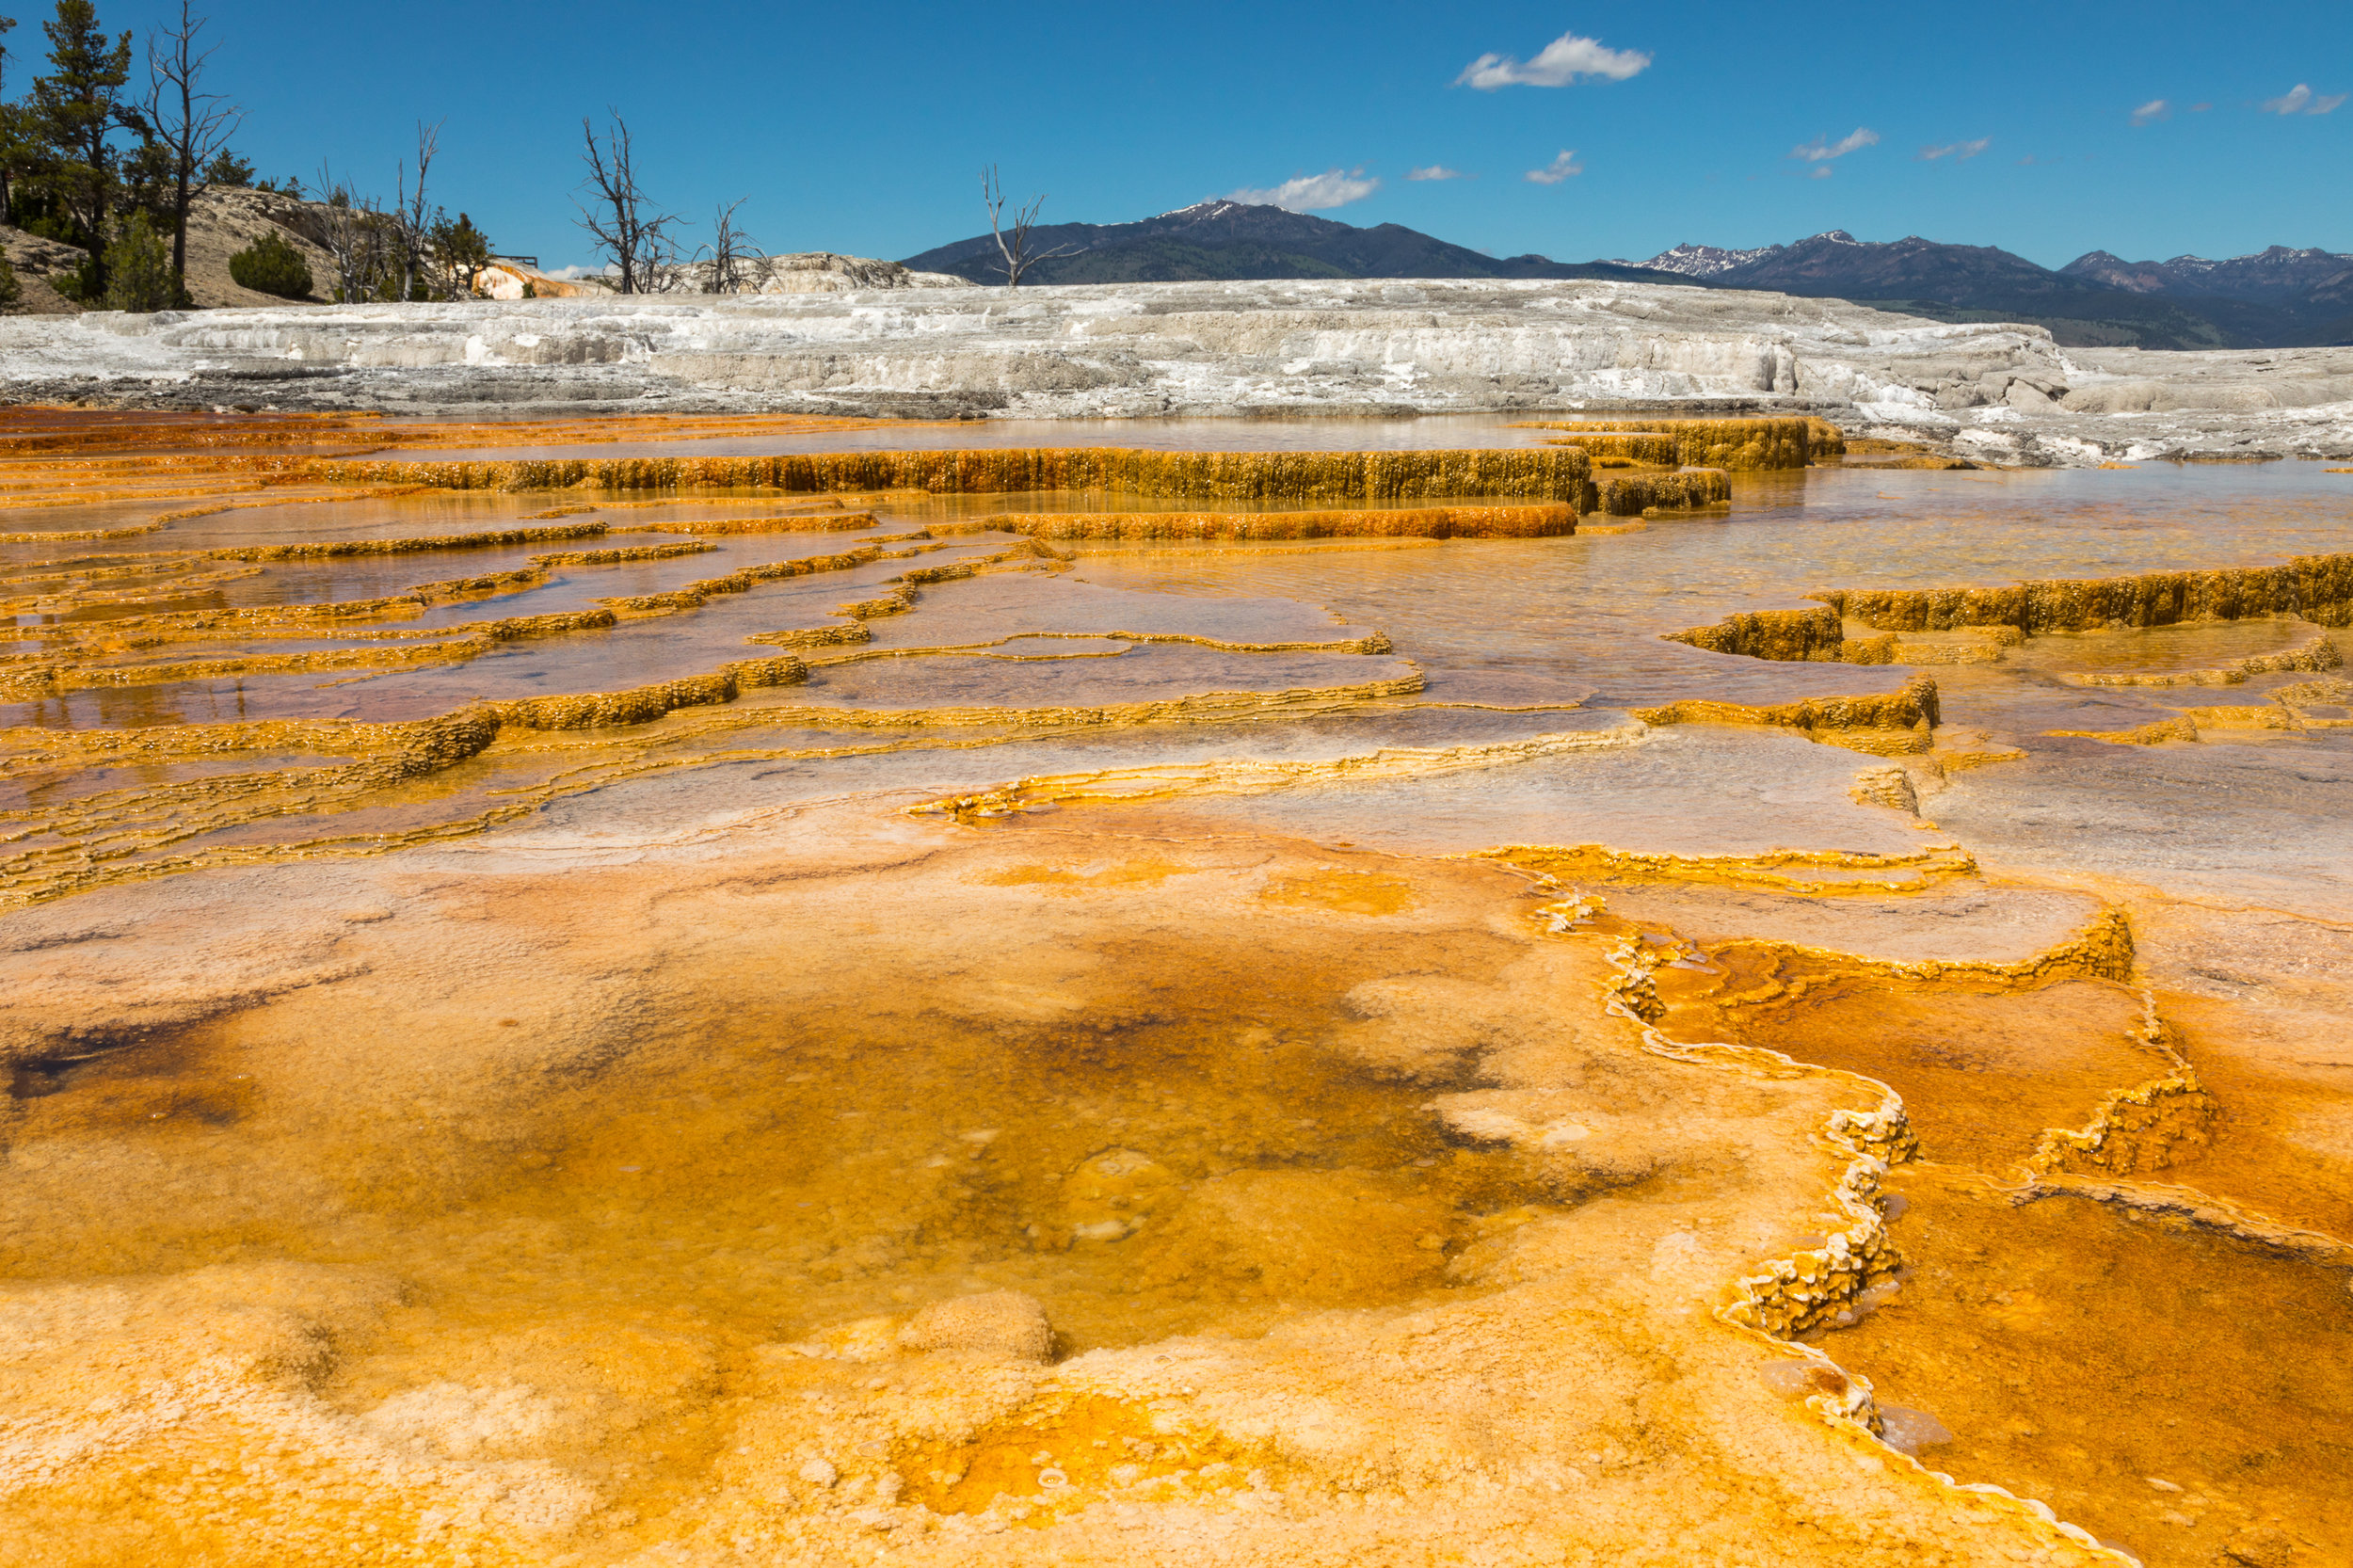 Mammoth Hot Springs, Yellowstone National Park, Image # 7362